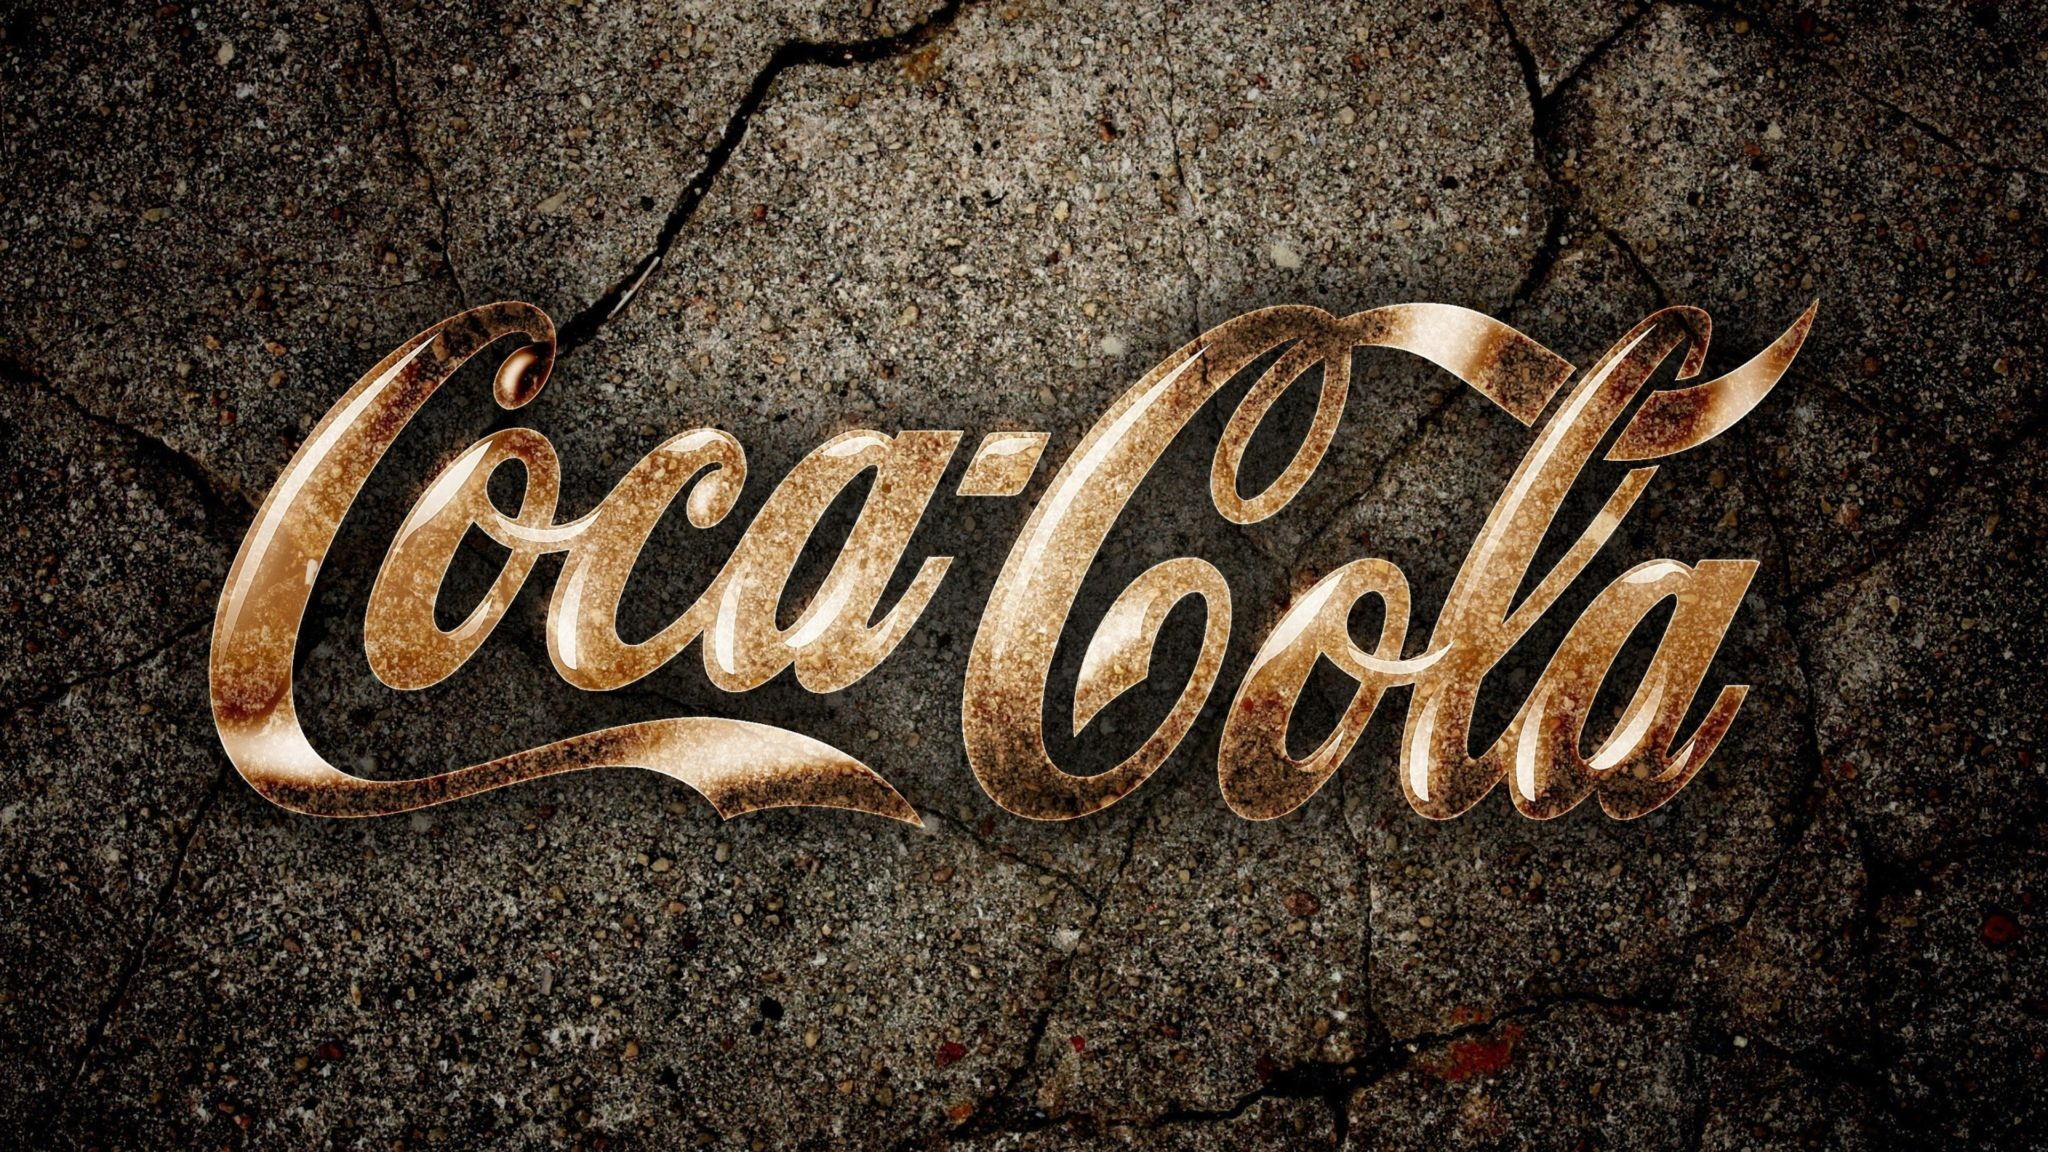 Coca Cola logo background